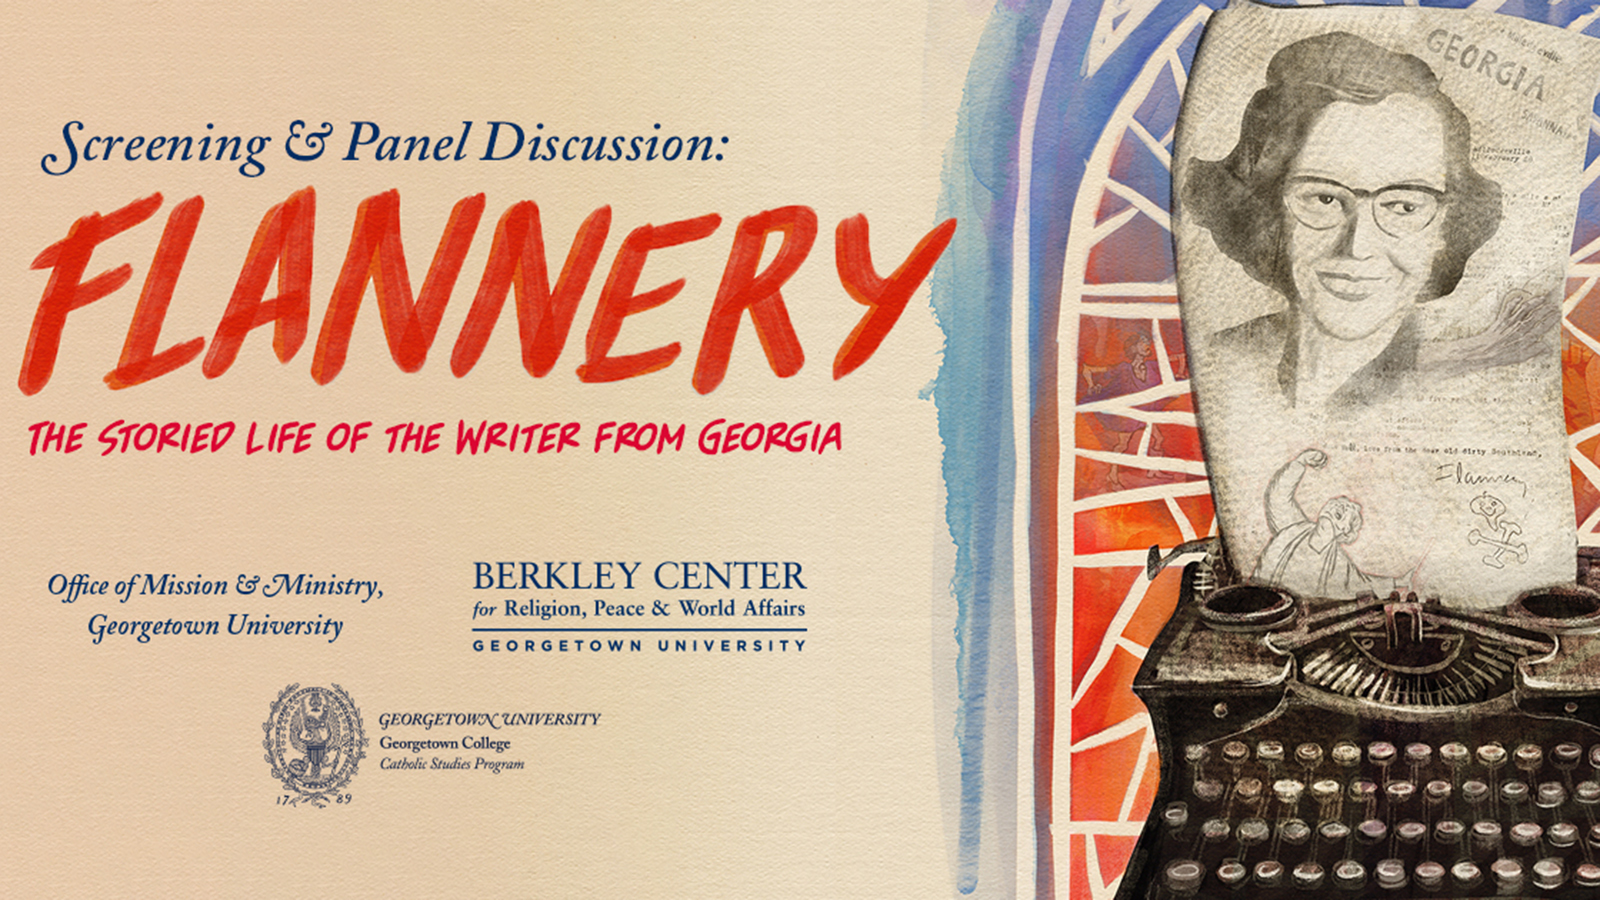 Flannery Event Poster